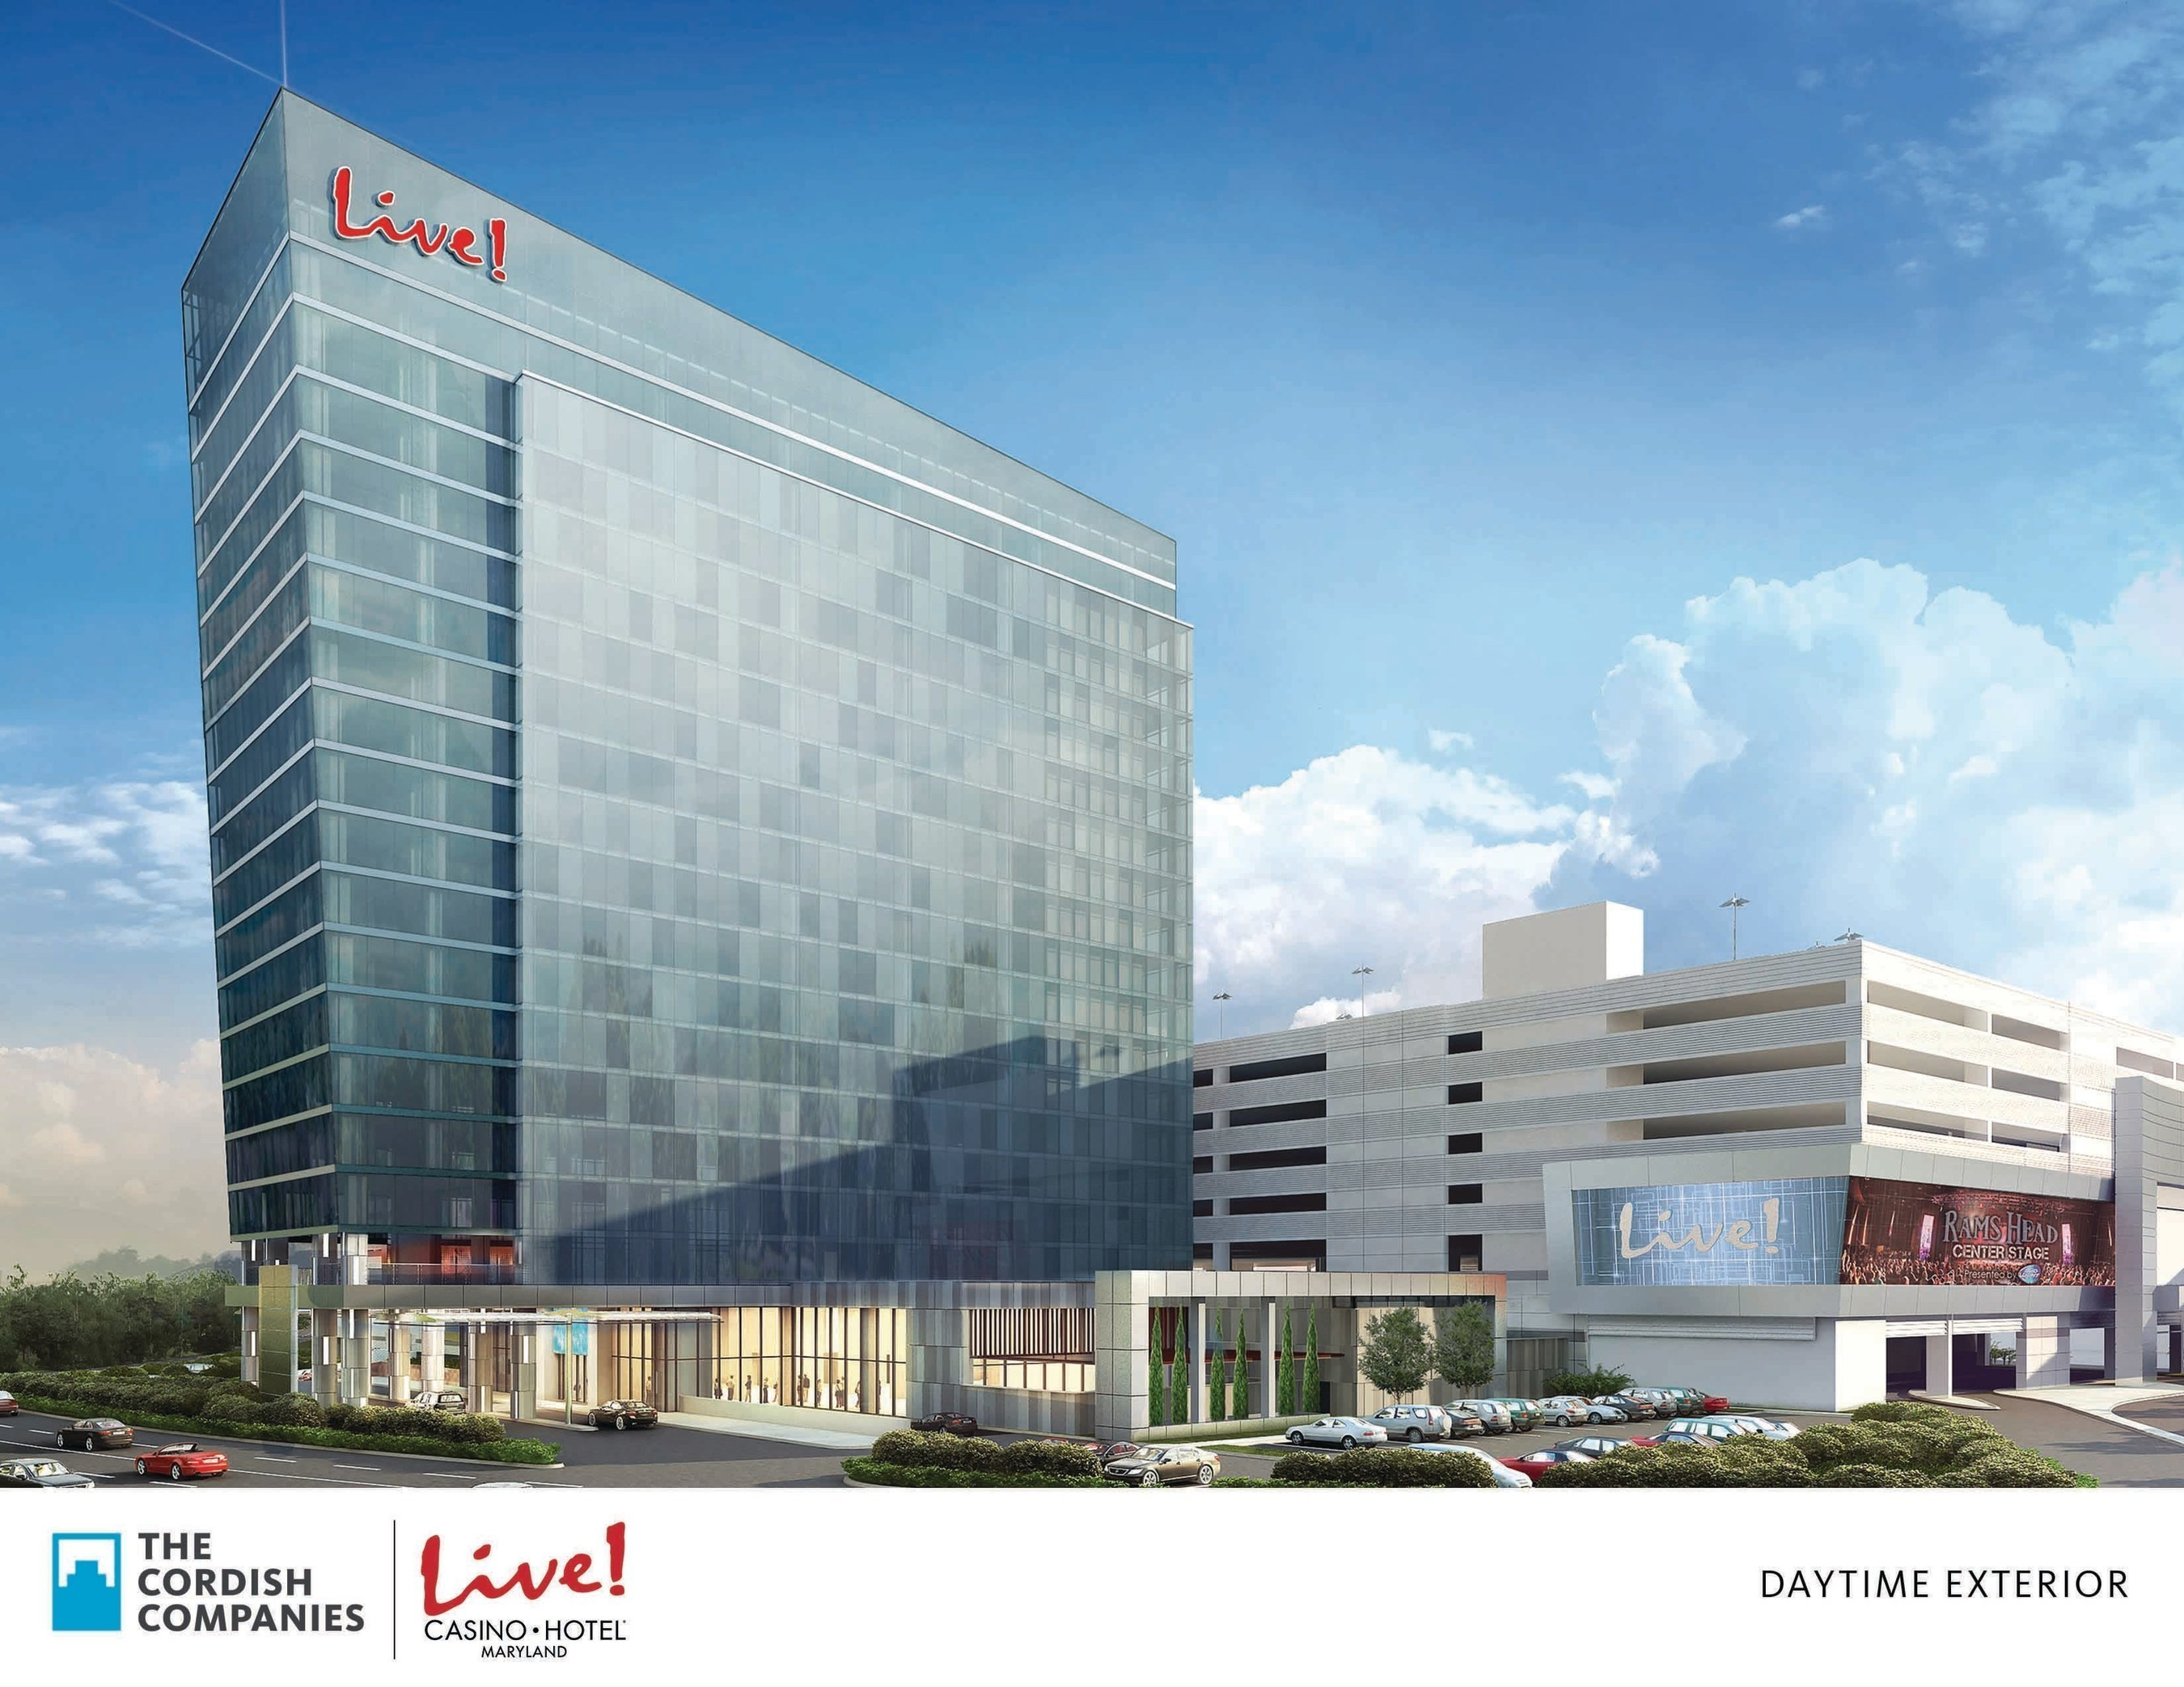 The Cordish Companies today broke ground on the new $200 million flagship Live! Hotel at Maryland Live! Casino, in Hanover, MD. The 350,000- square- foot property features a 17-story hotel tower, making it the tallest building in Anne Arundel County, with 310 guest rooms, an event center, meeting spaces, new dining options, and a day spa/salon. It is the first hotel in the country to carry the Live! brand. Projected completion in early 2018.